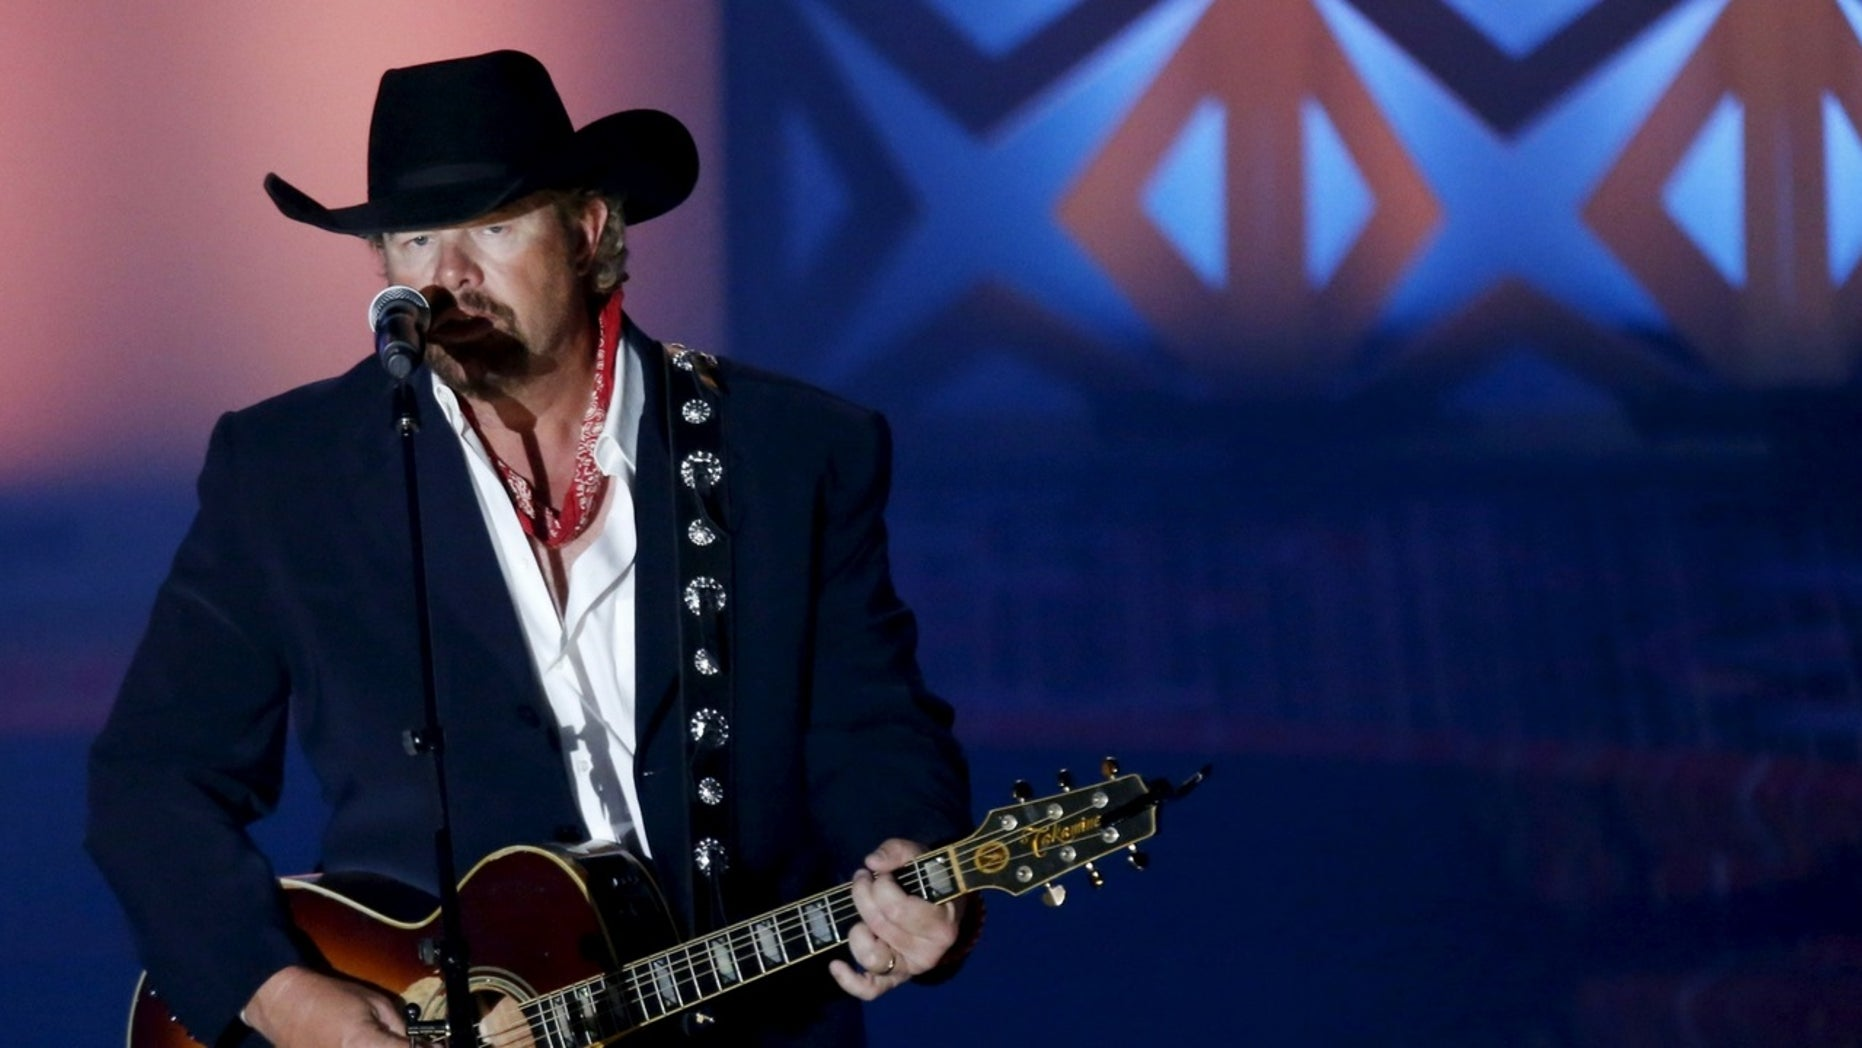 Toby Keith opens up in an interview about country music today and his lengthy career.